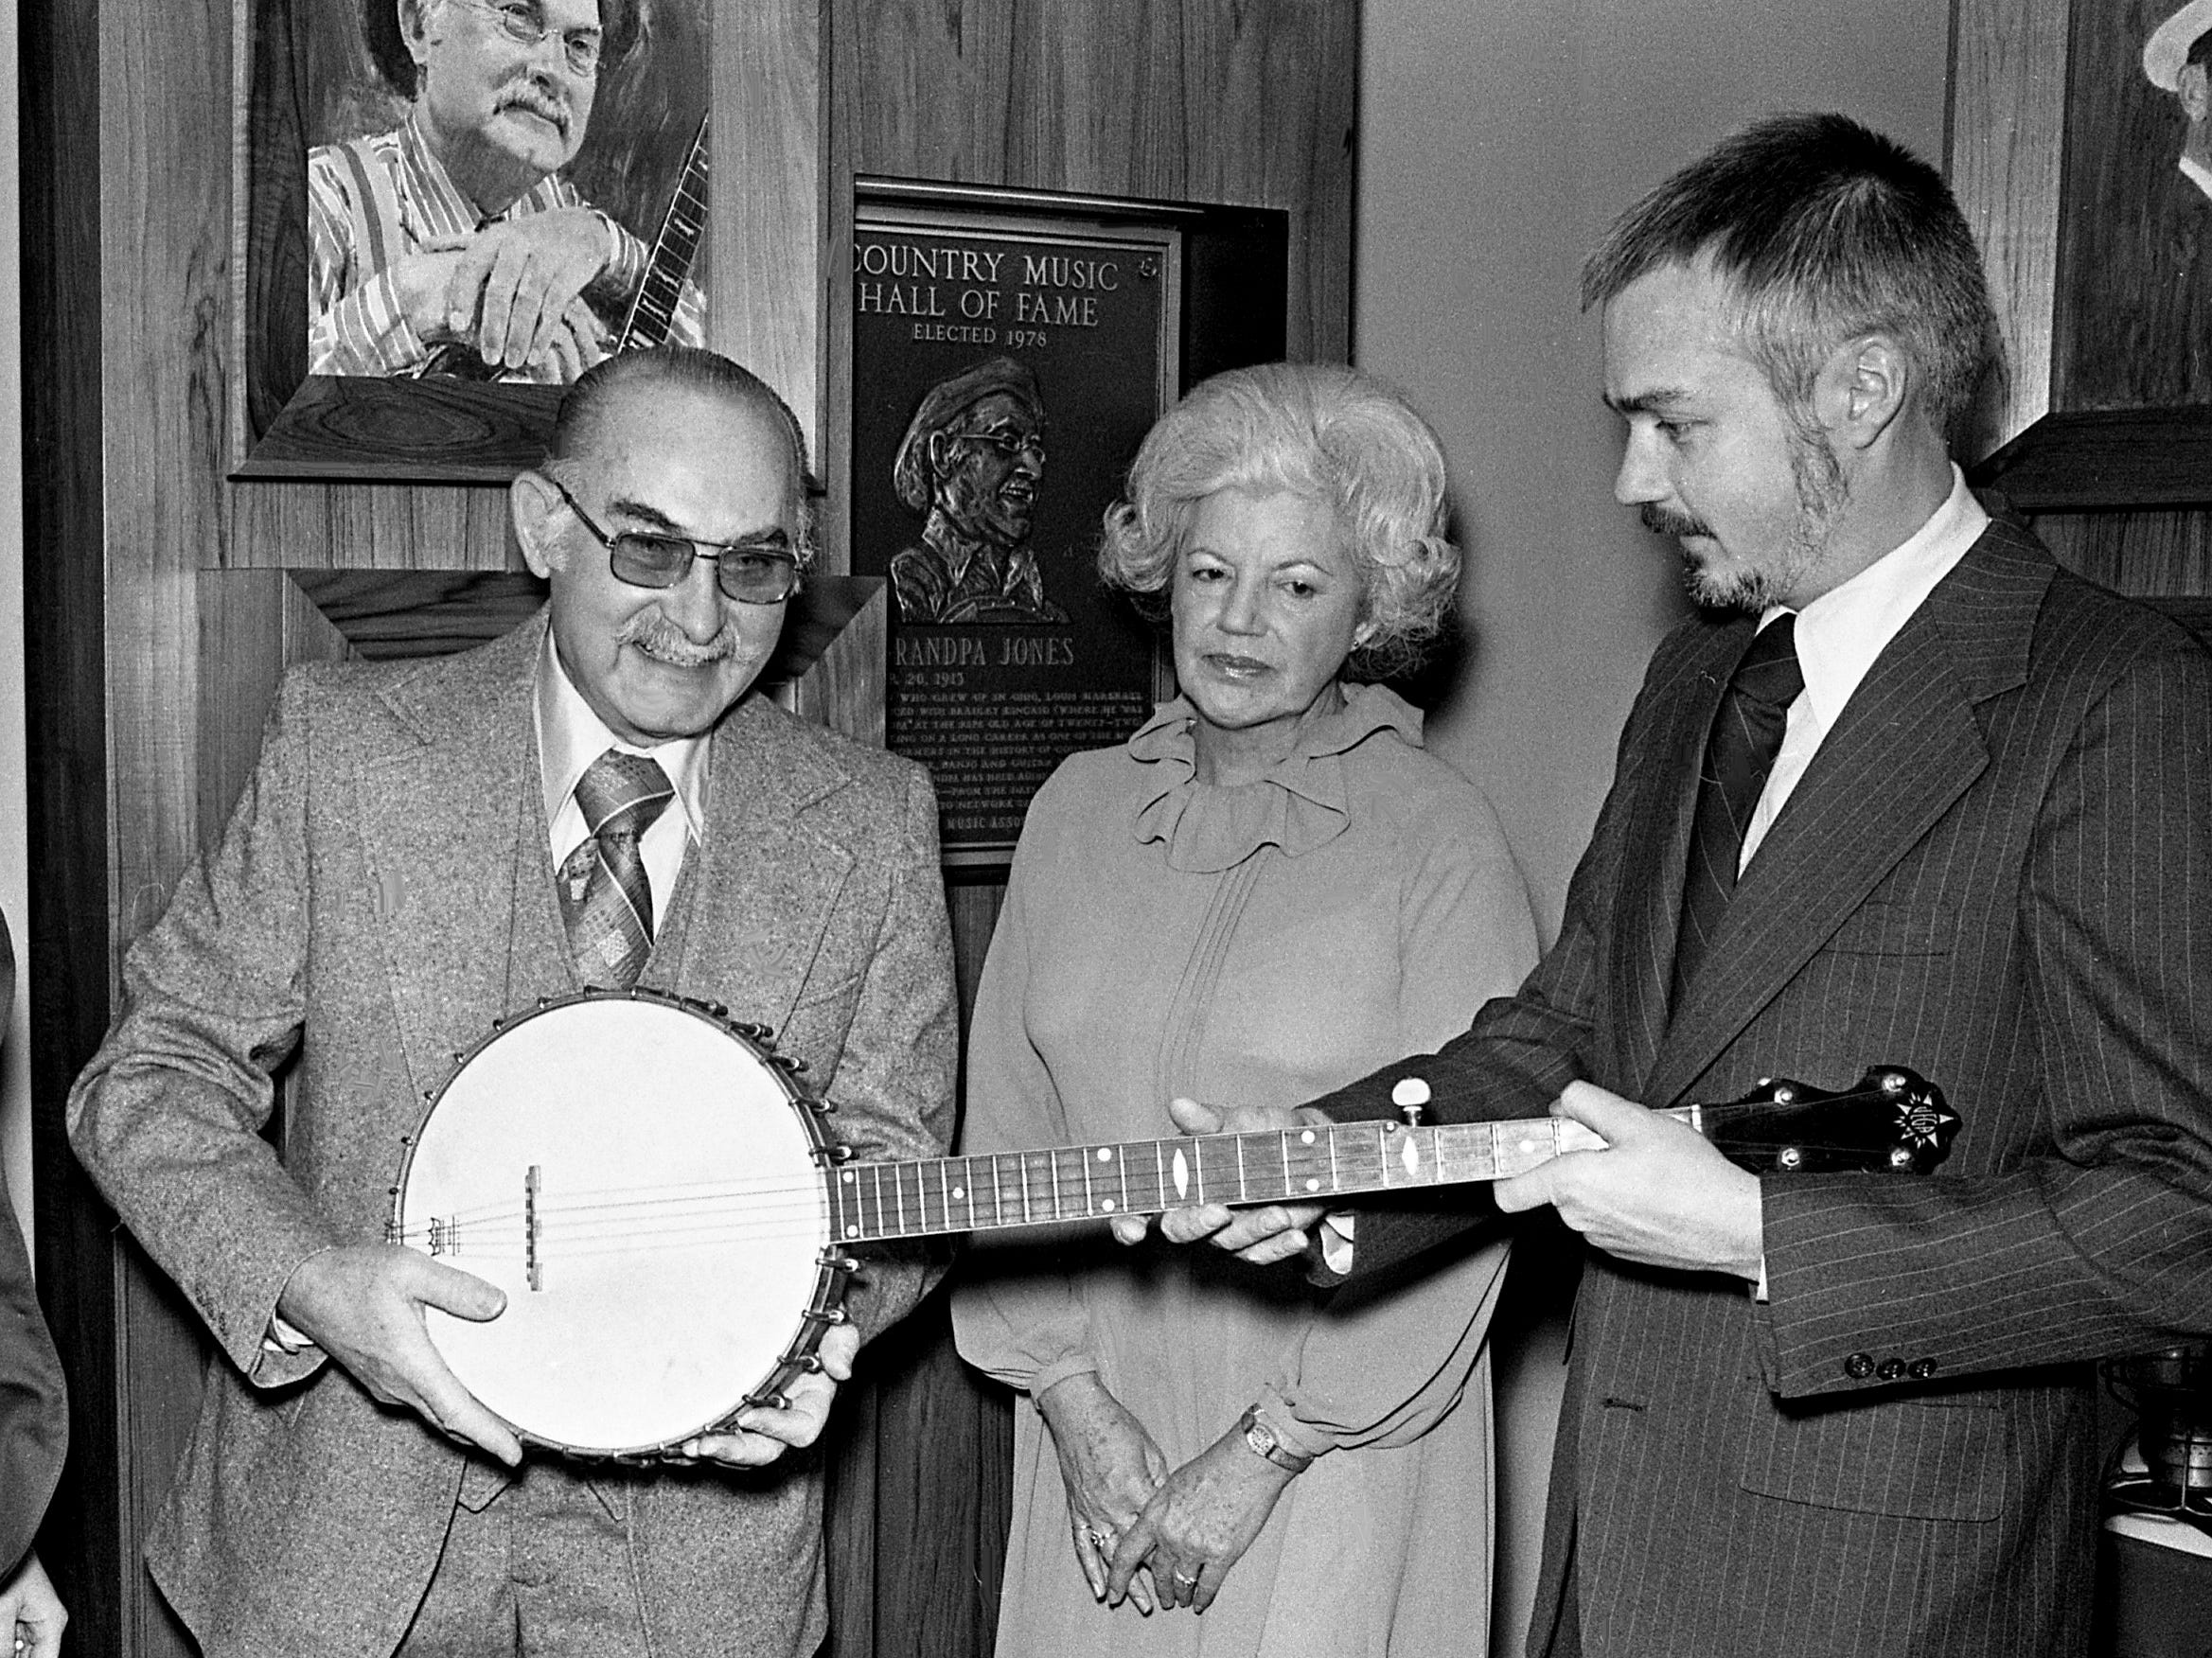 During ceremonies marking his induction in the Country Music Hall of Fame on Jan. 31, 1979, Grandpa Jones, left, took time for a little picking and grinning. Looking on are his wife Ramona and Country Music Foundation Director Bill Ivey.